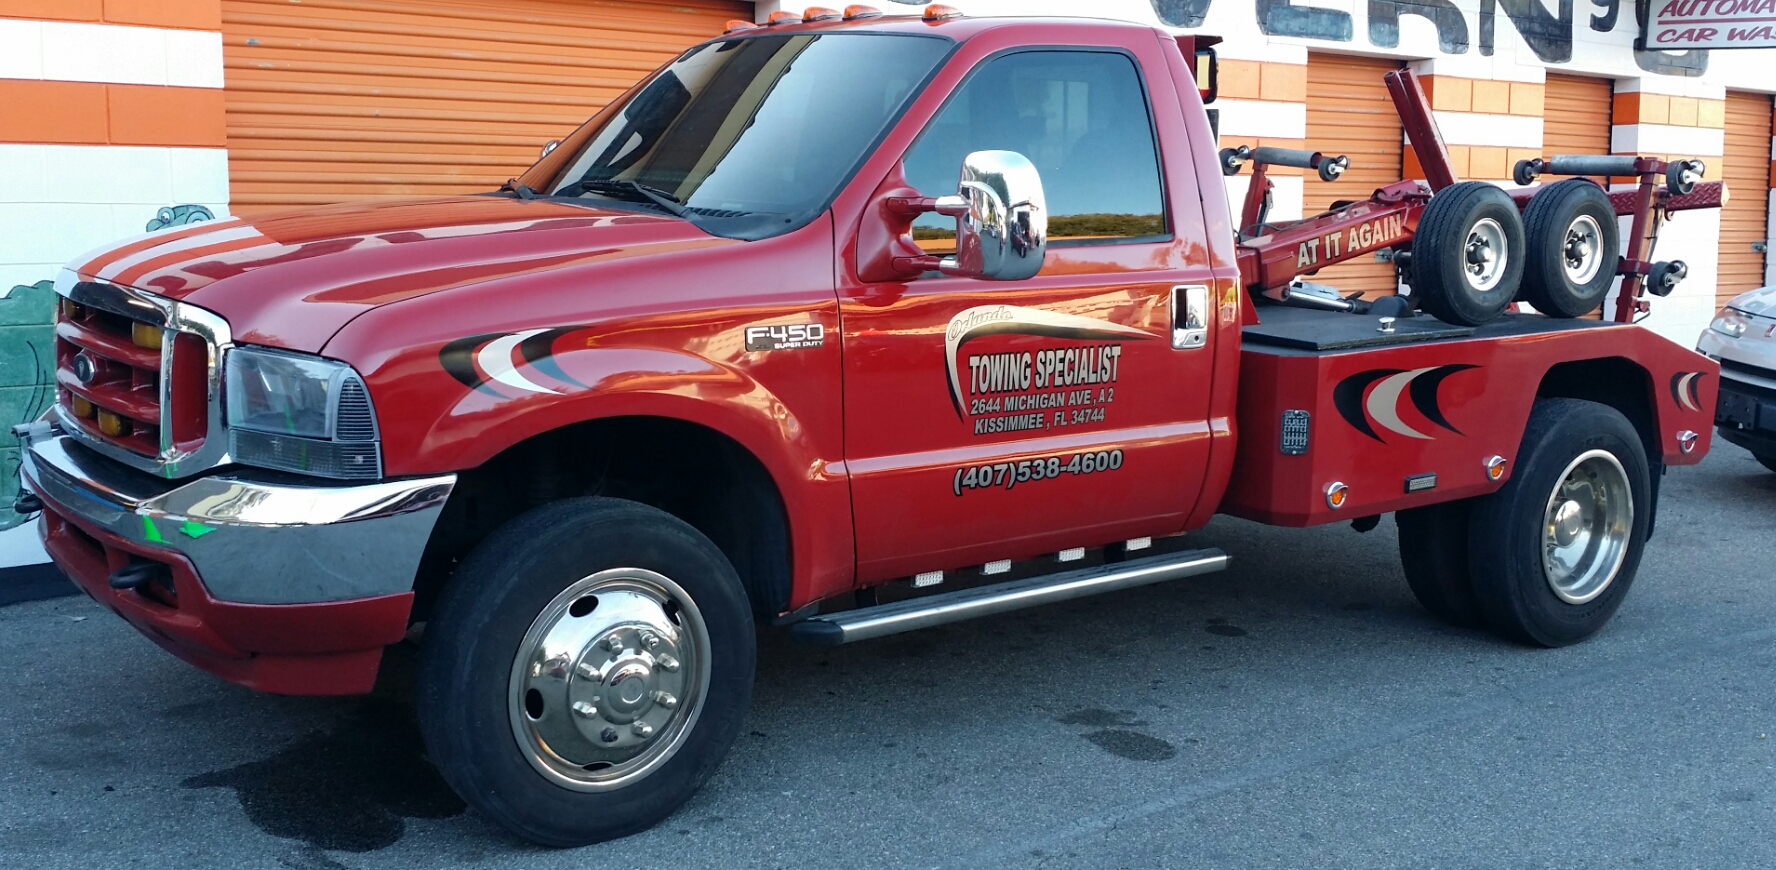 Orlando Towing Specialist Kissimmee Florida Fl